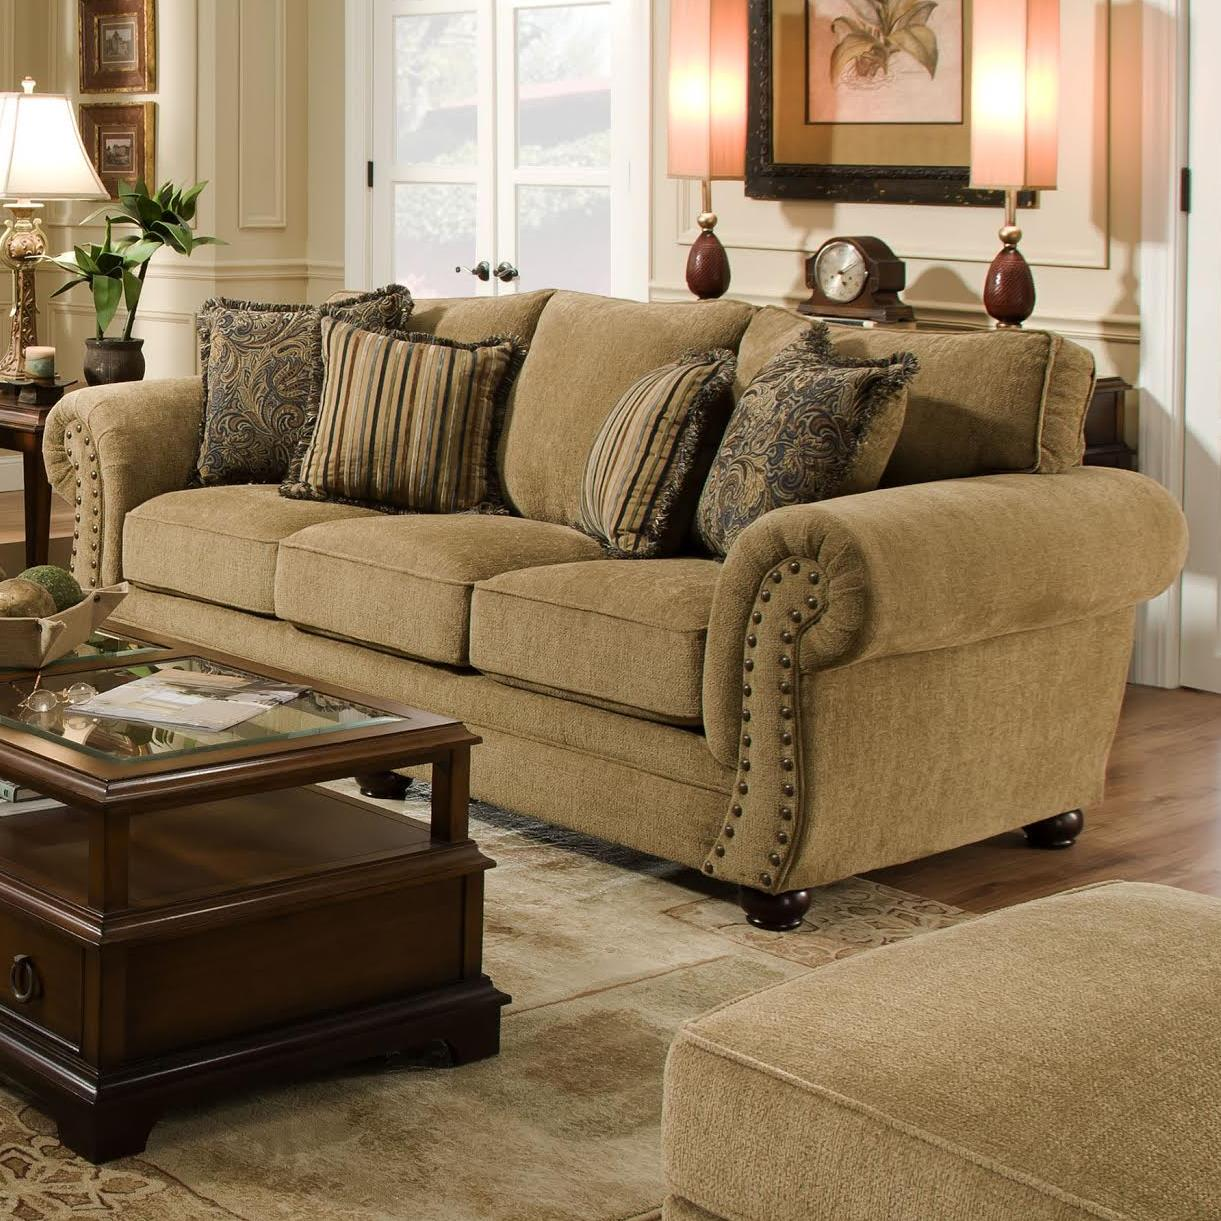 Simmons Upholstery 4277 Traditional Sofa With Rolled Arms And Nailhead Trim Dunk Bright